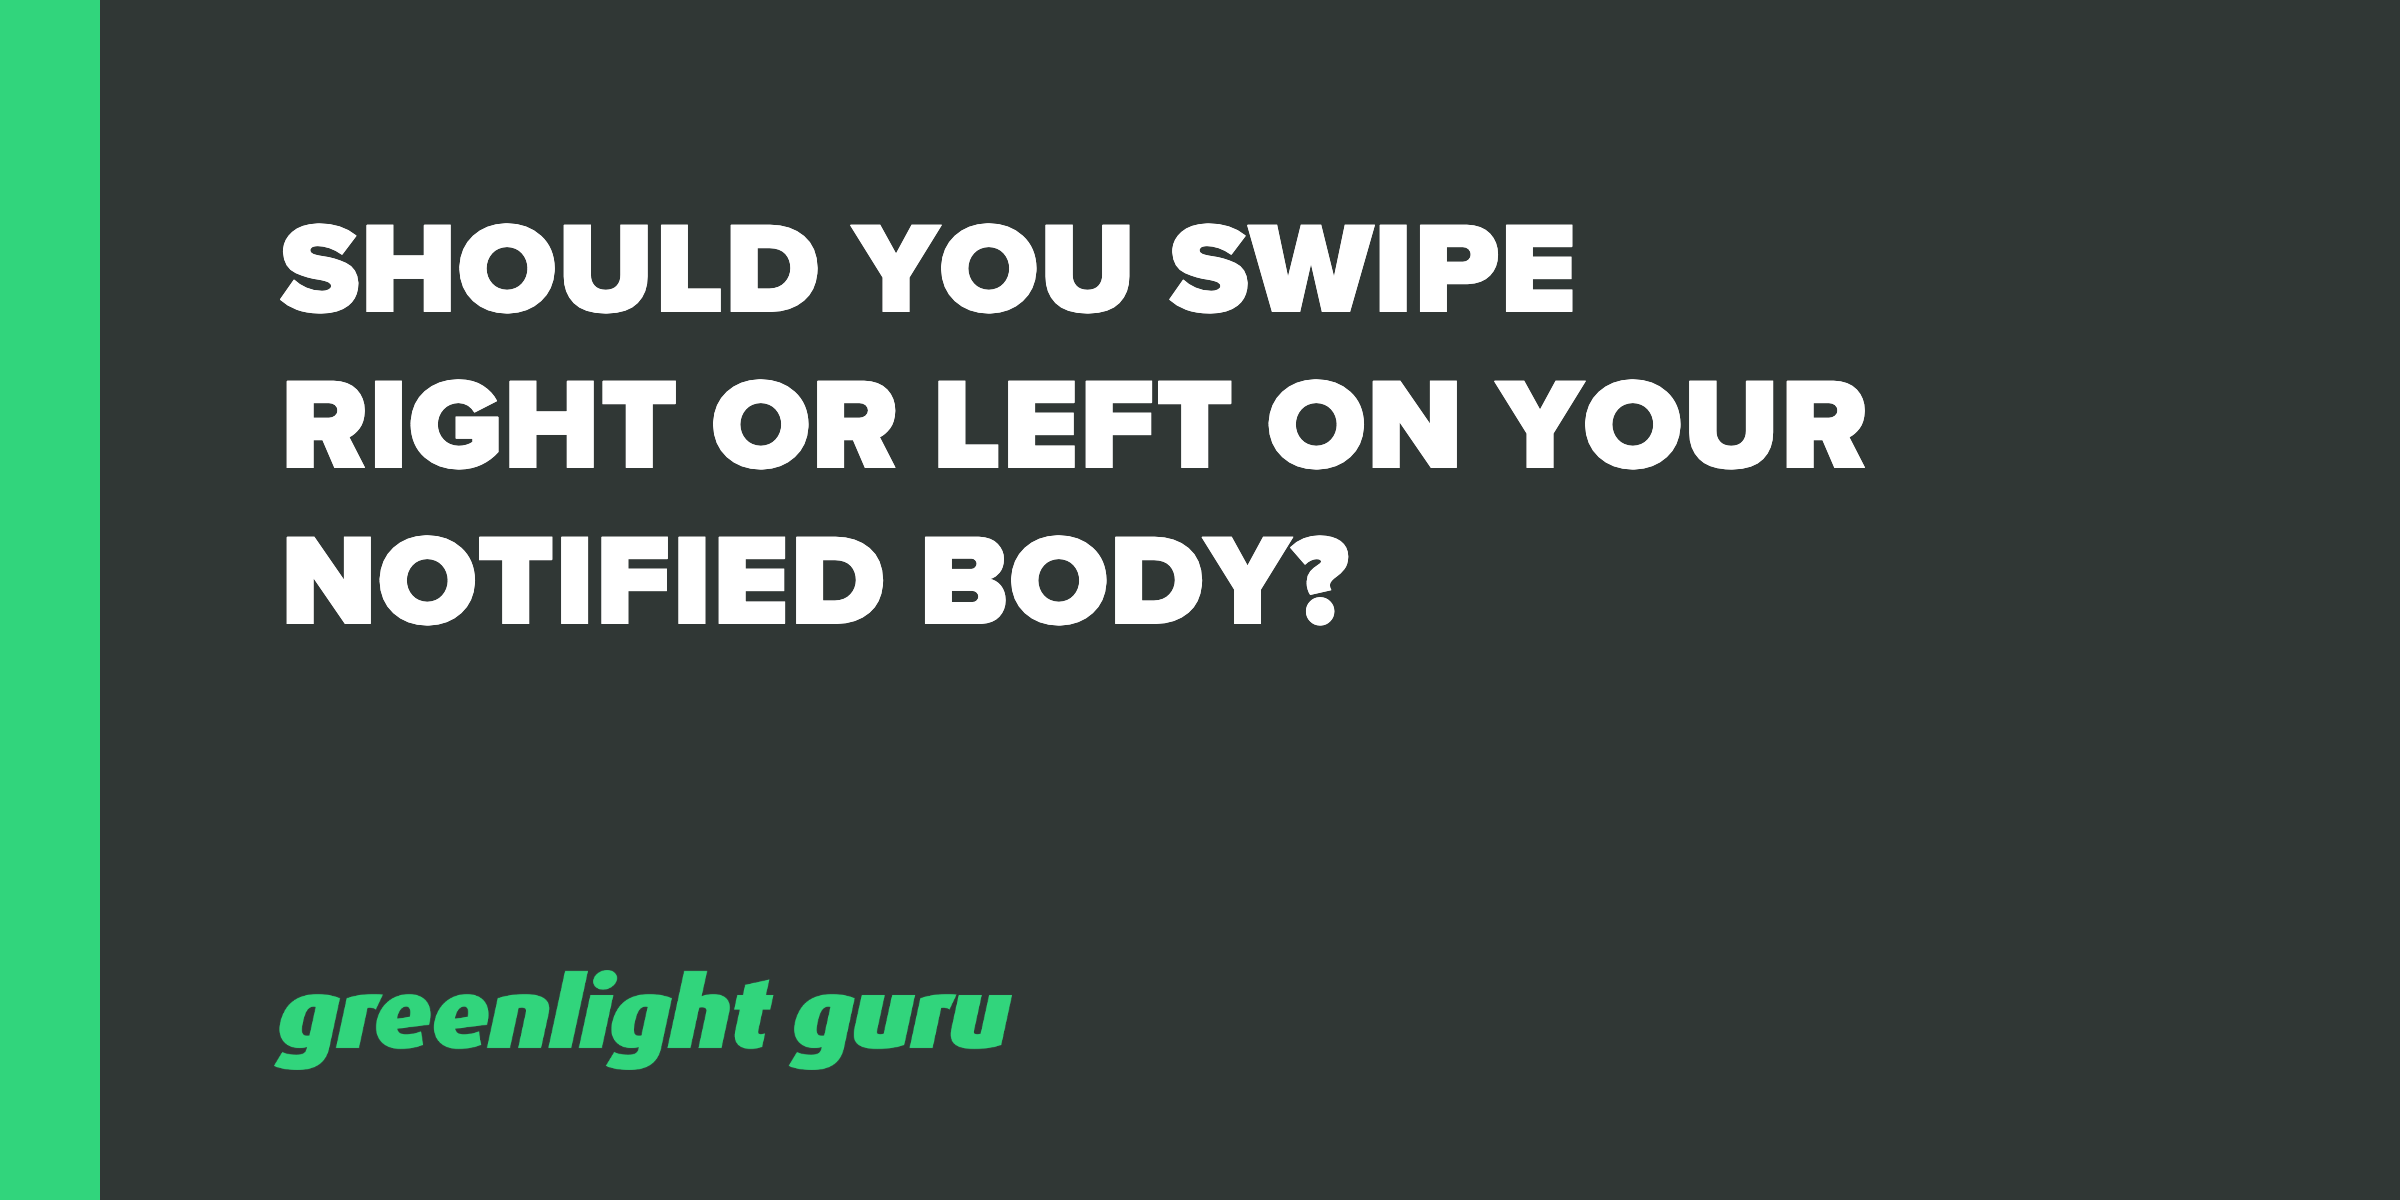 Should you swipe right or left on your notified body_